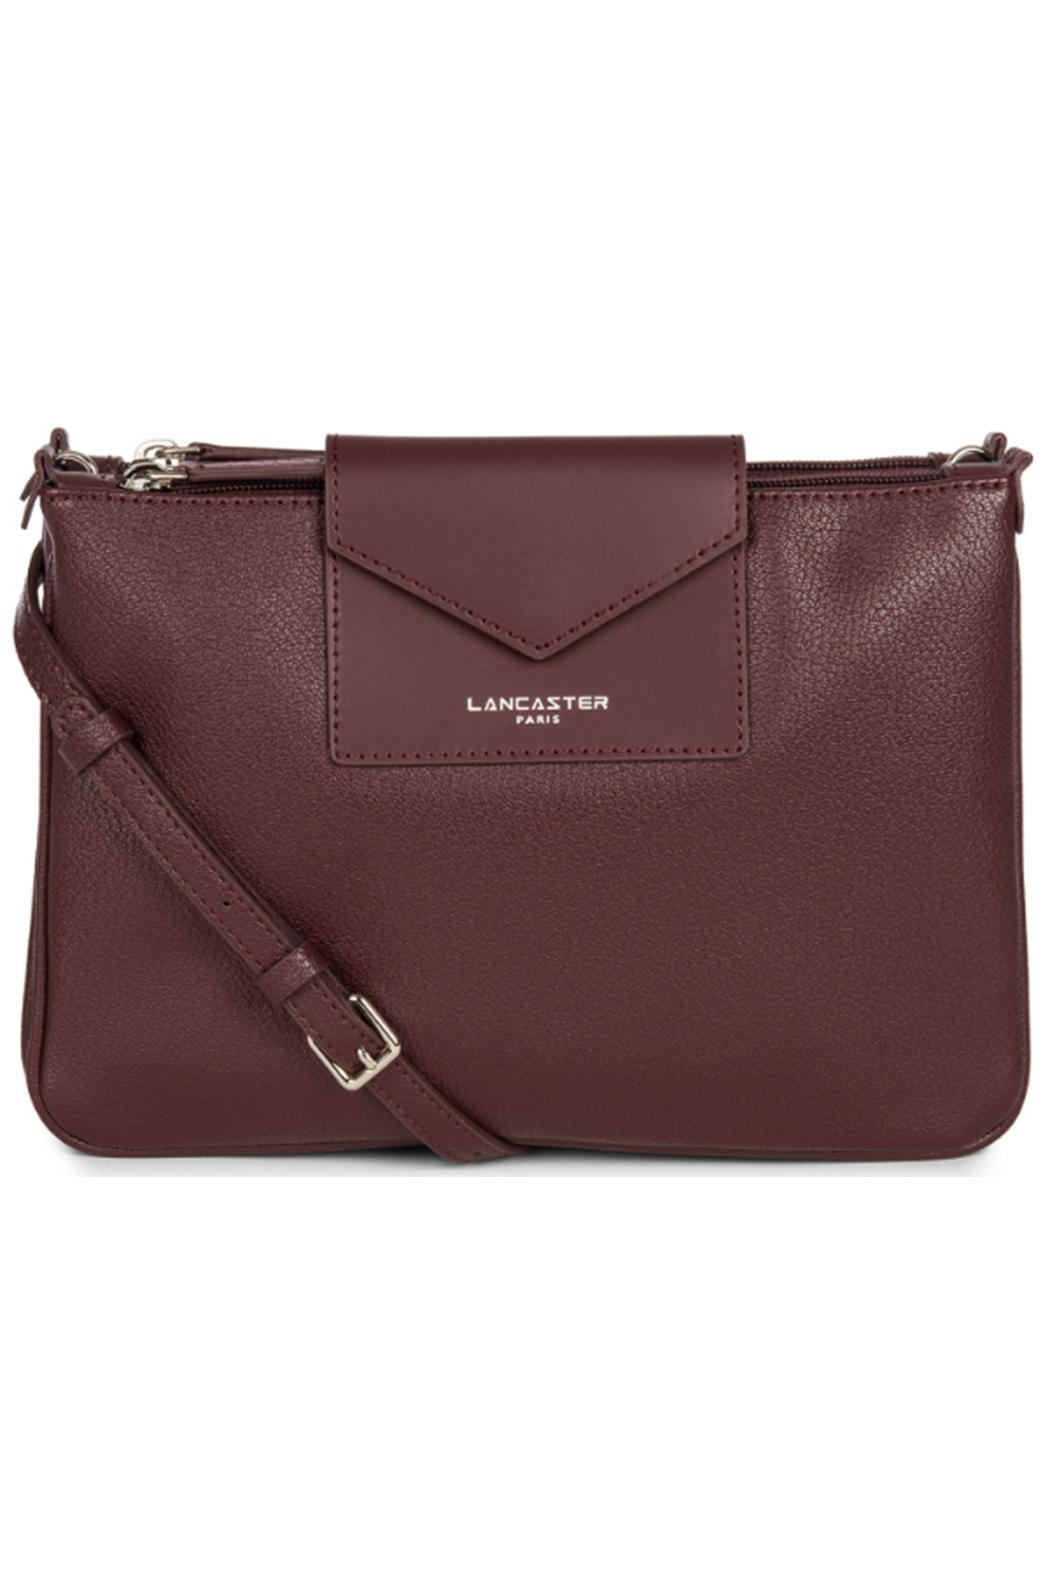 Lancaster-Paris Maya Crossbody Bag - Main Image